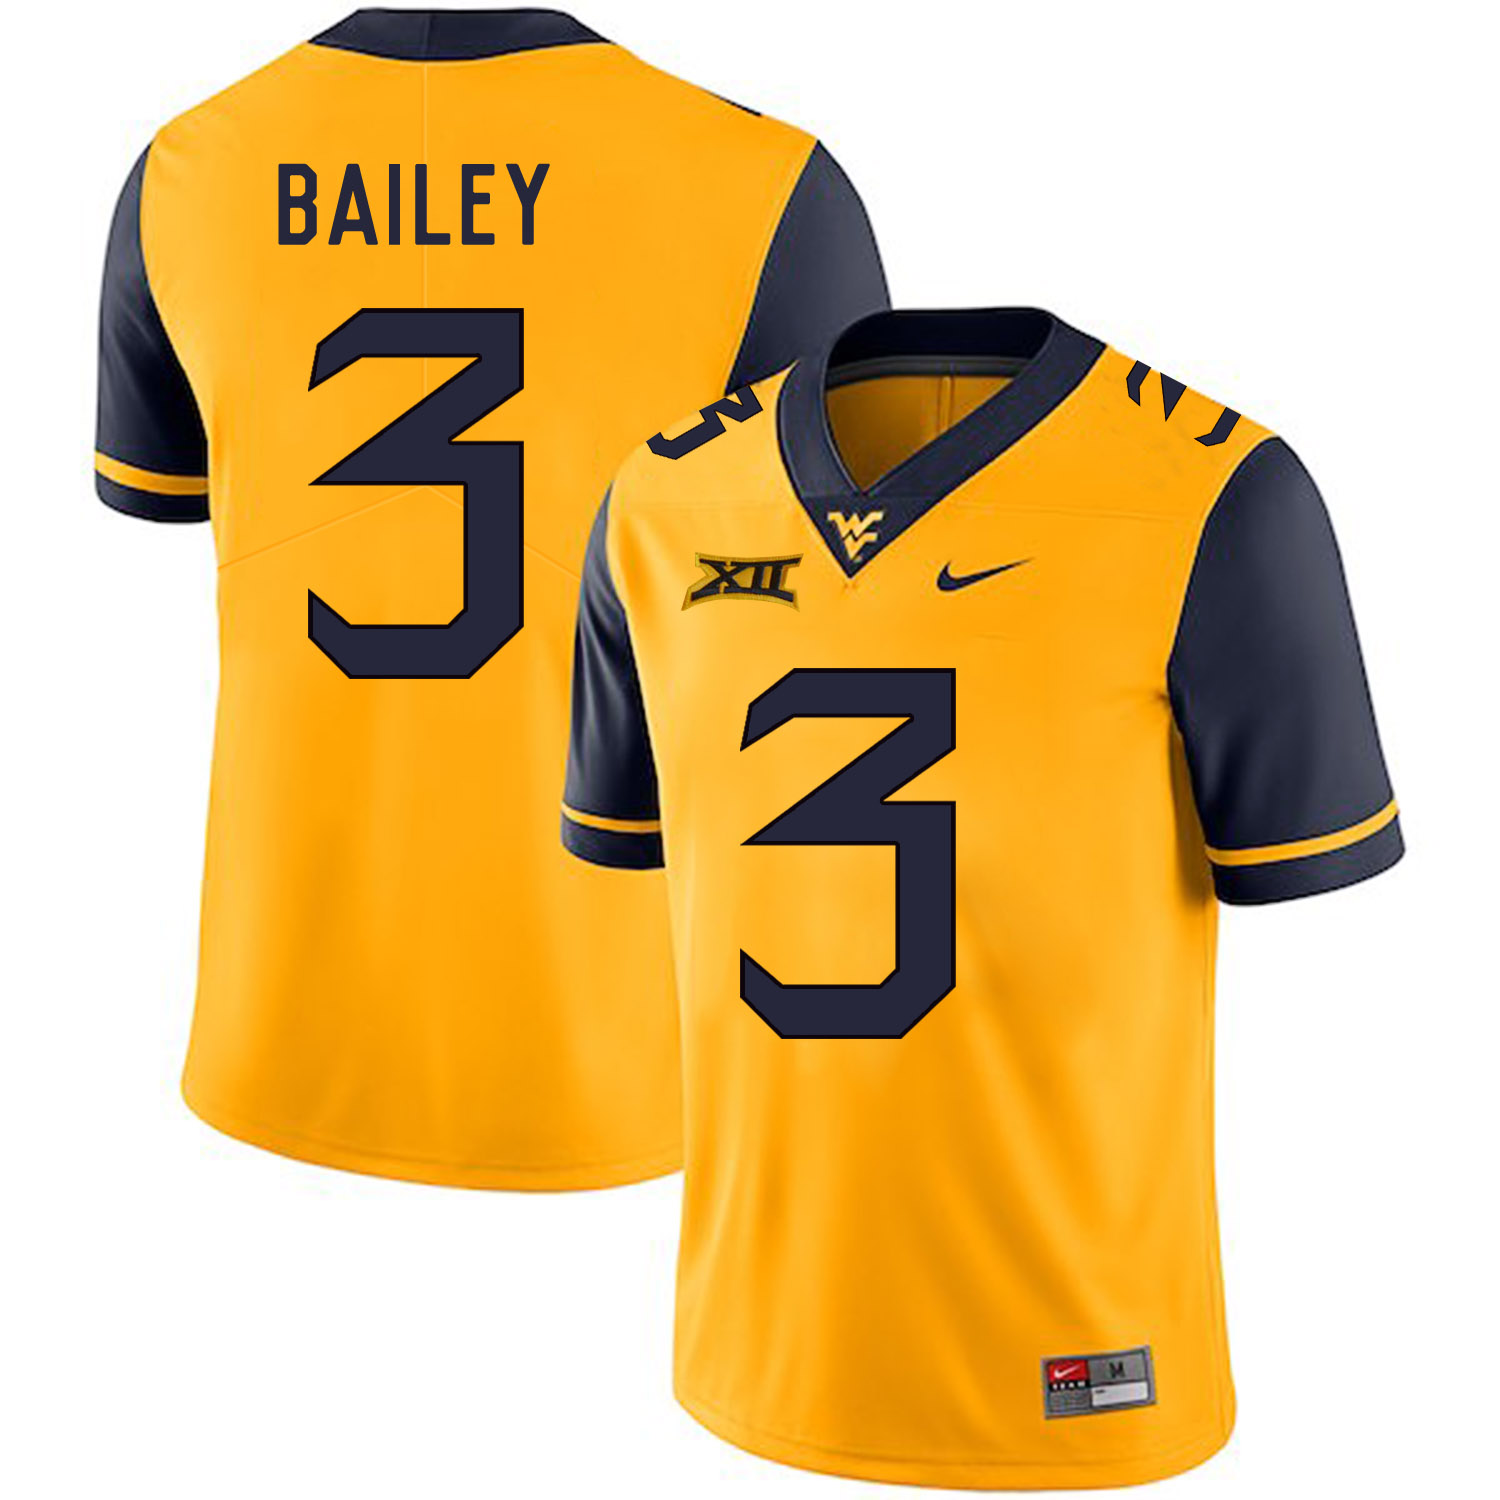 West Virginia Mountaineers 3 Stedman Bailey Gold College Football Jersey